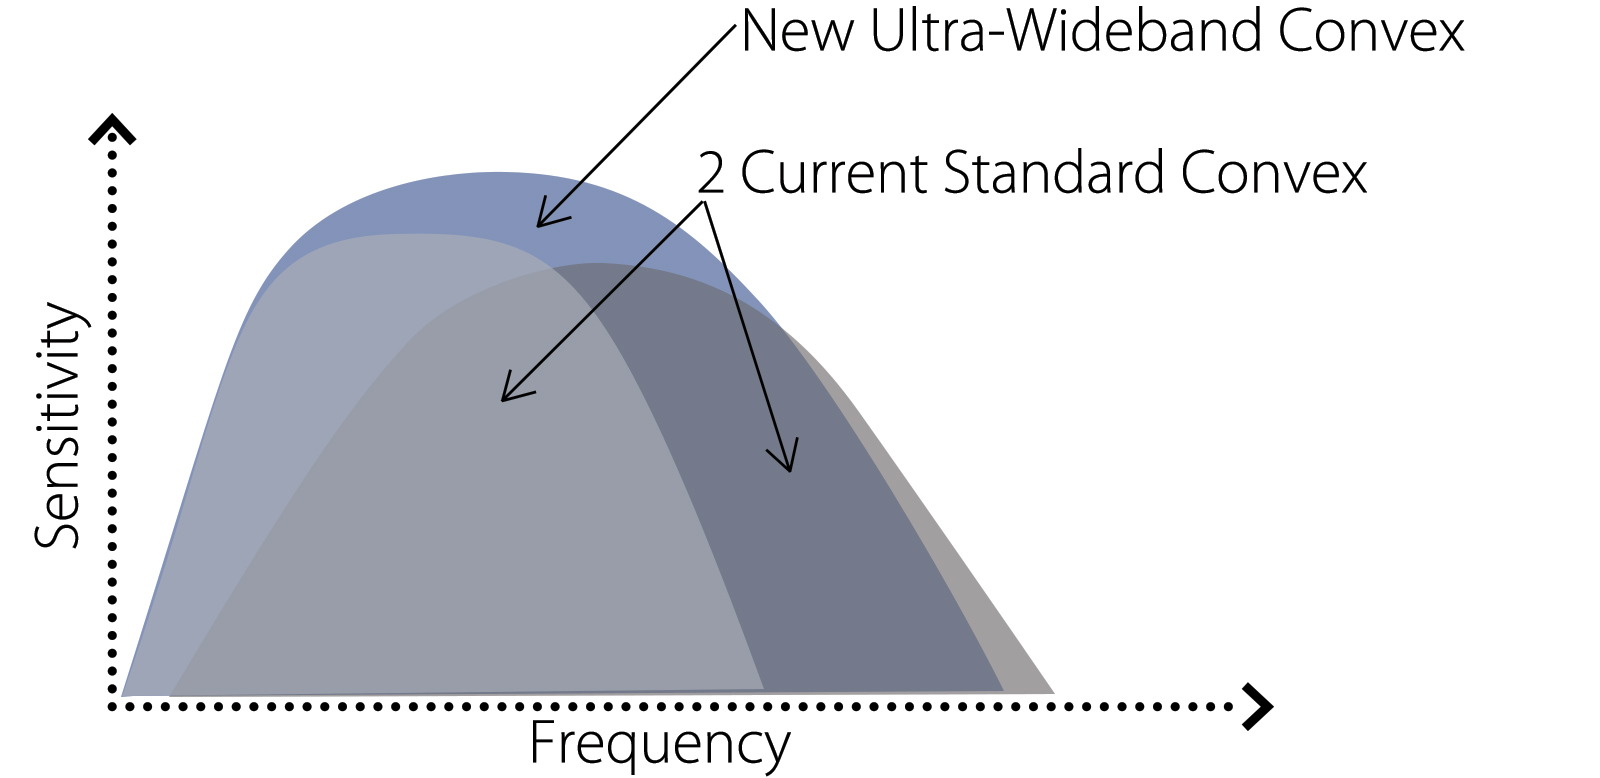 Ultra-wideband Multi-Frequency iDMS Convex (i8CX1)